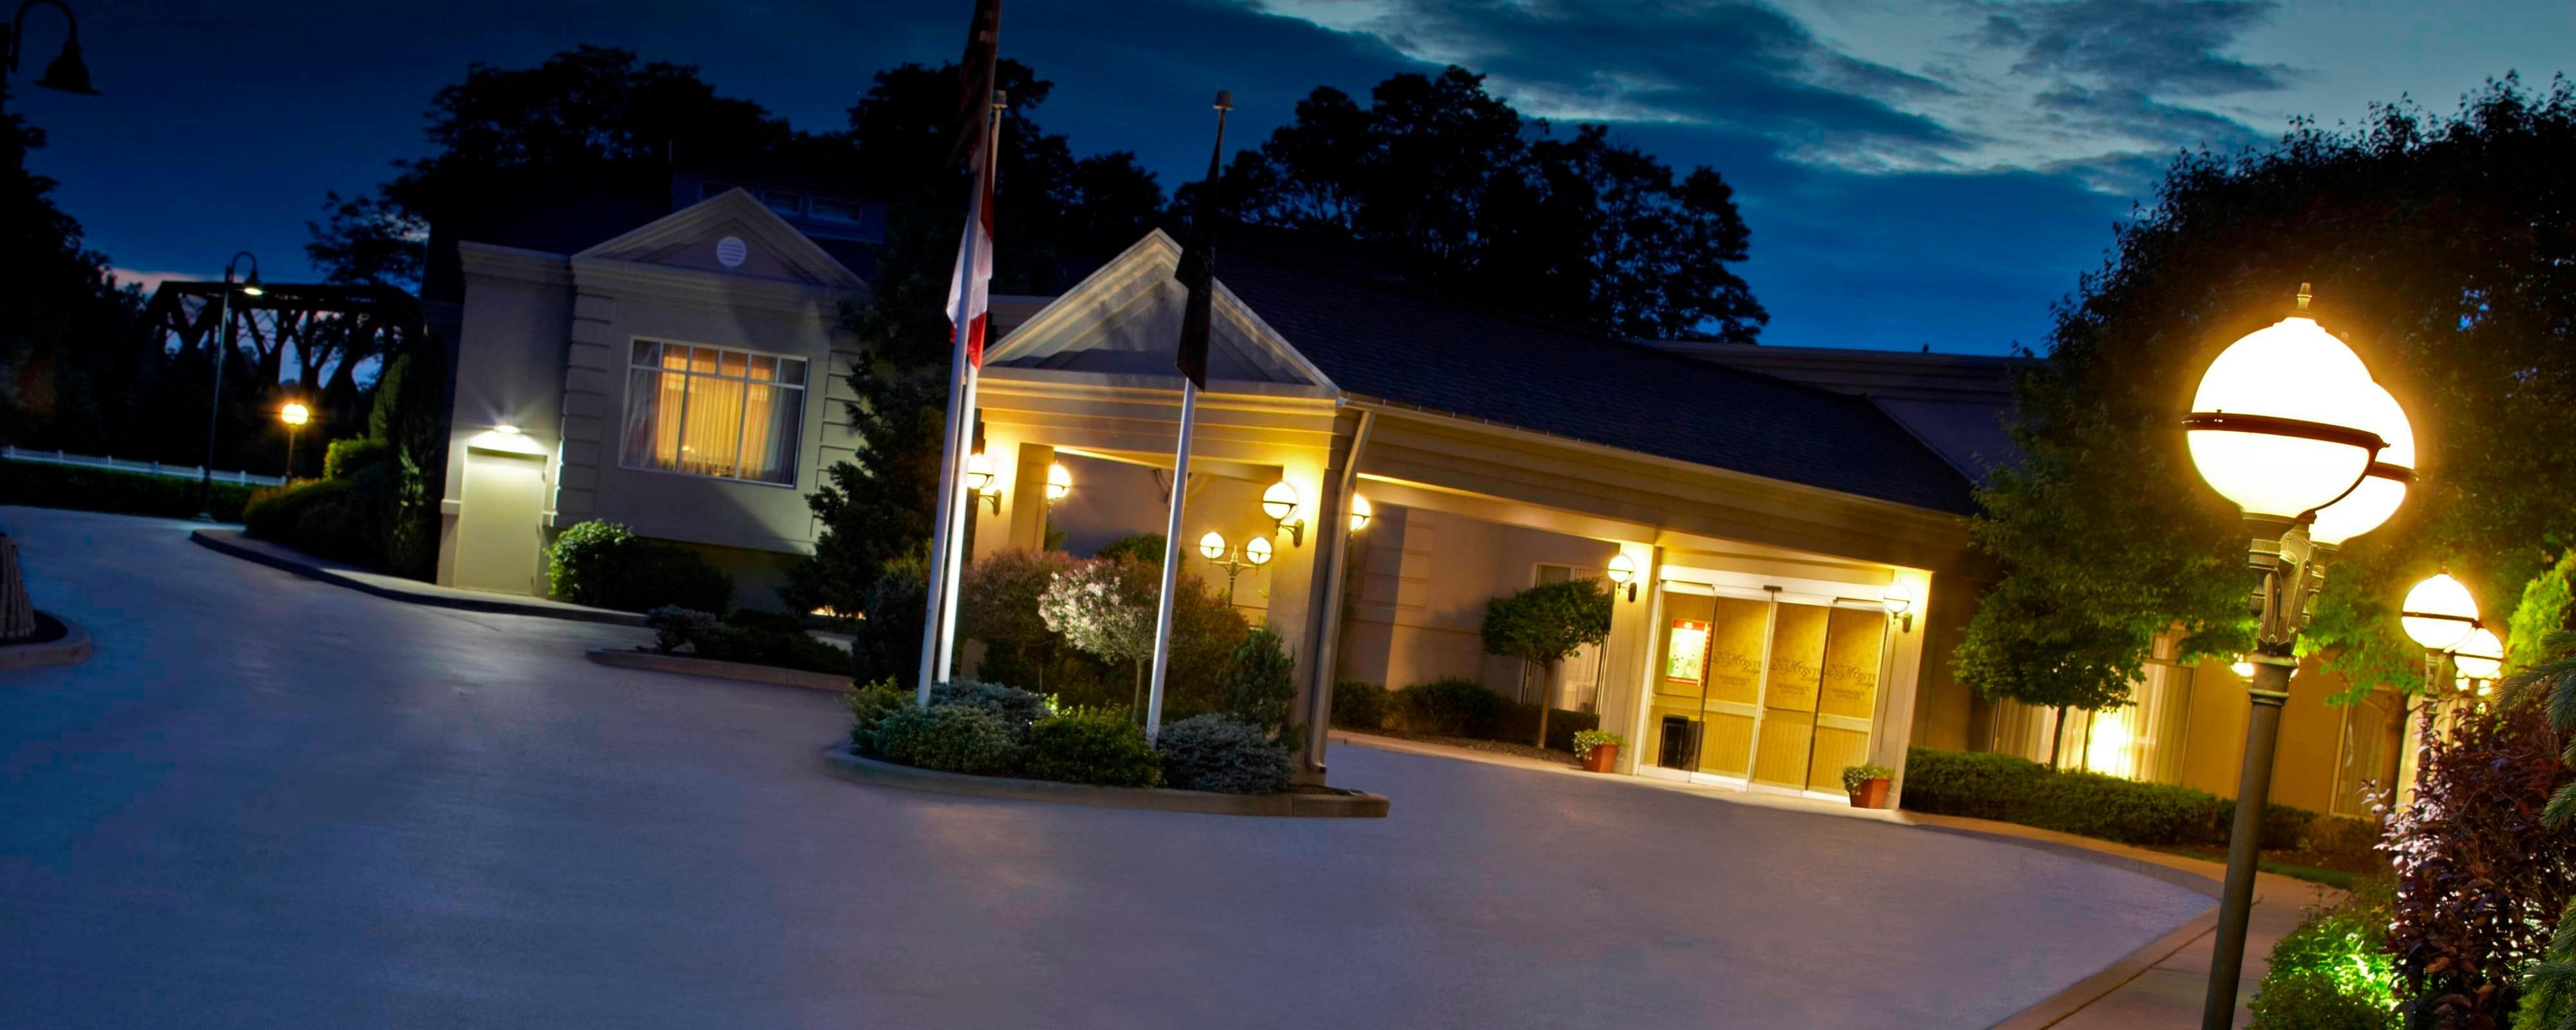 Hotels In Pittsford Ny The Del Monte Lodge Renaissance